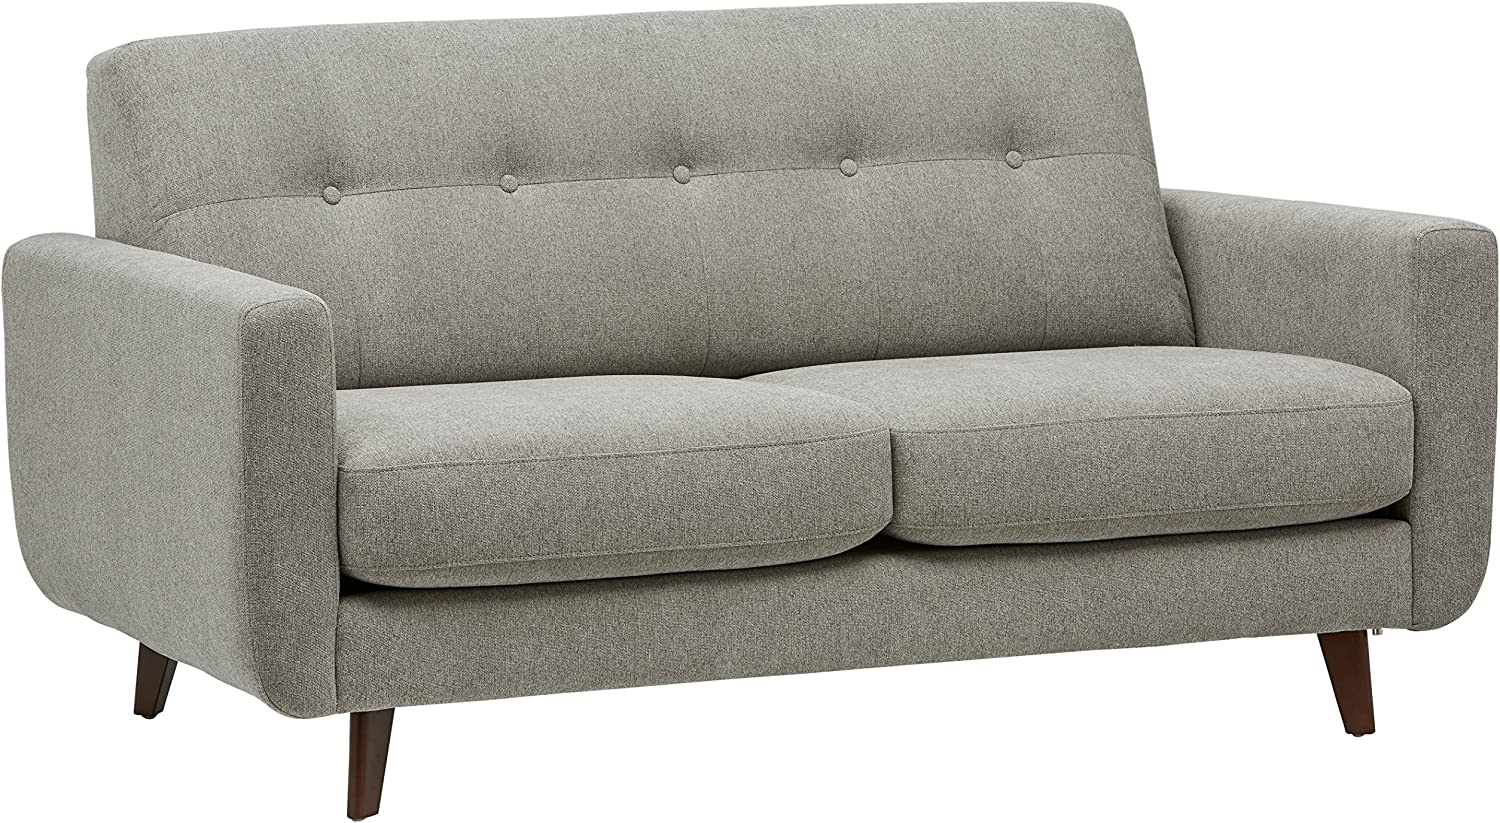 91VMNtOVYpL. AC SL1500 - What Is The Best Sofa For Back Pain Sufferers - ChairPicks